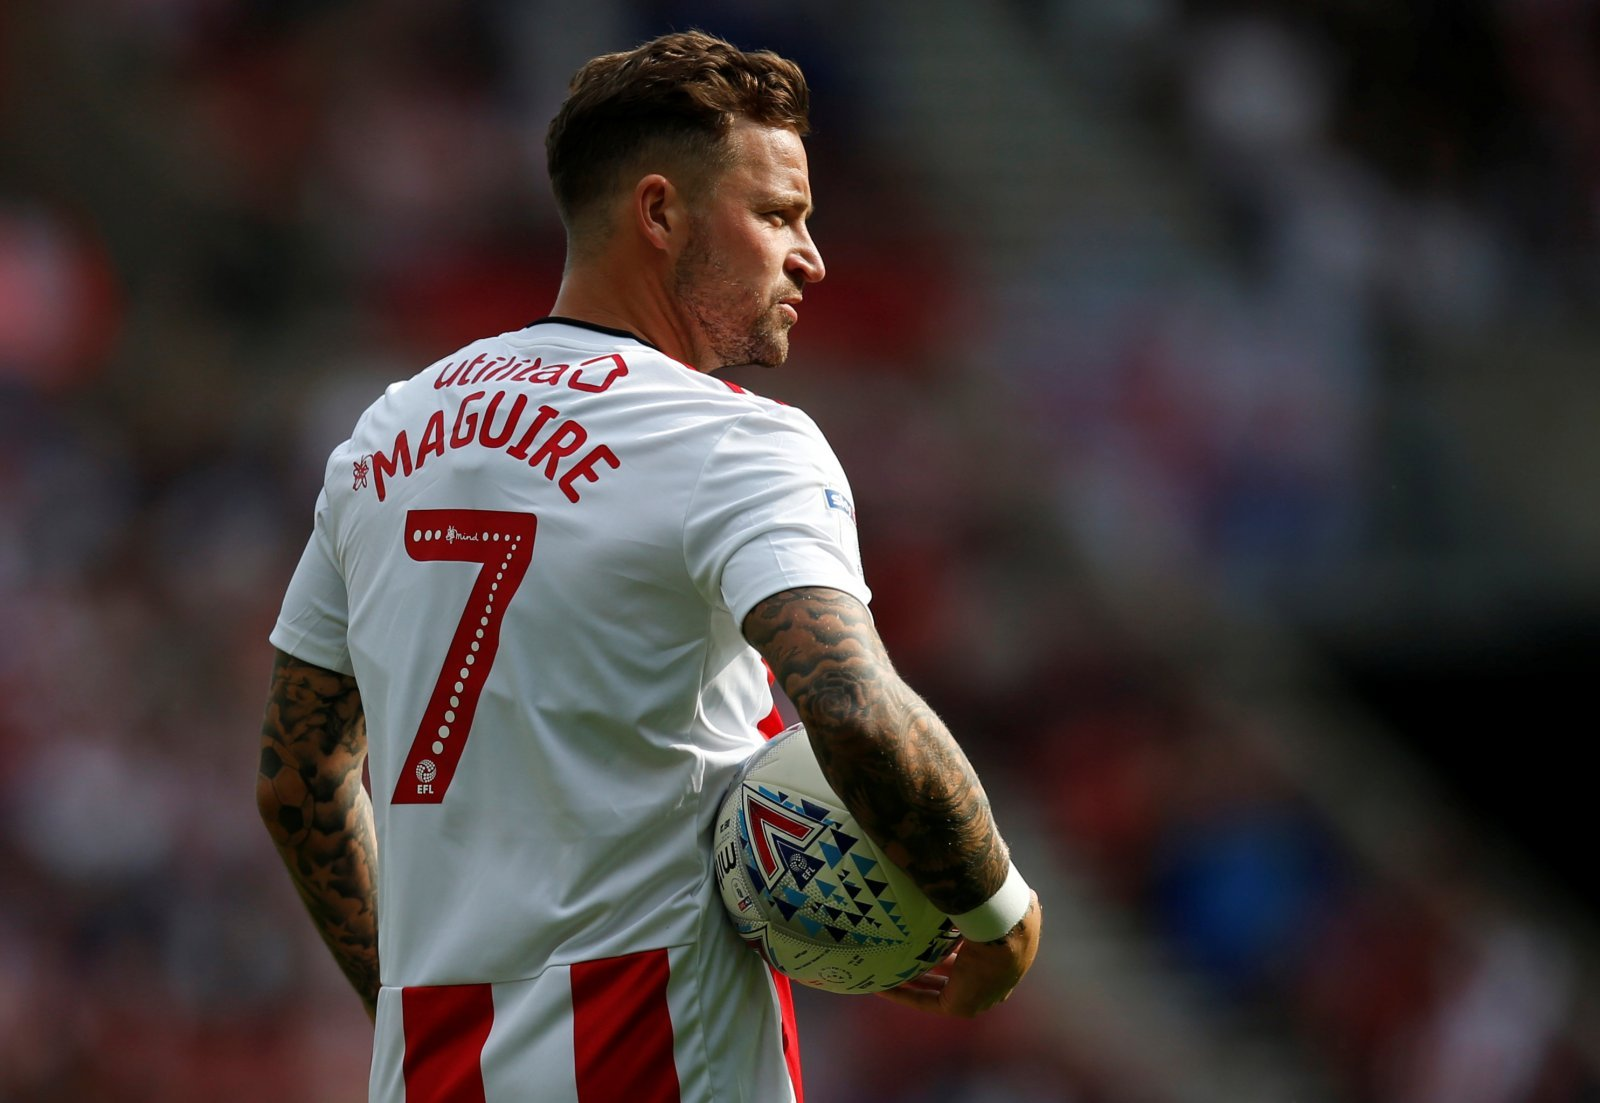 Sunderland: Chris Maguire nominated for League One award